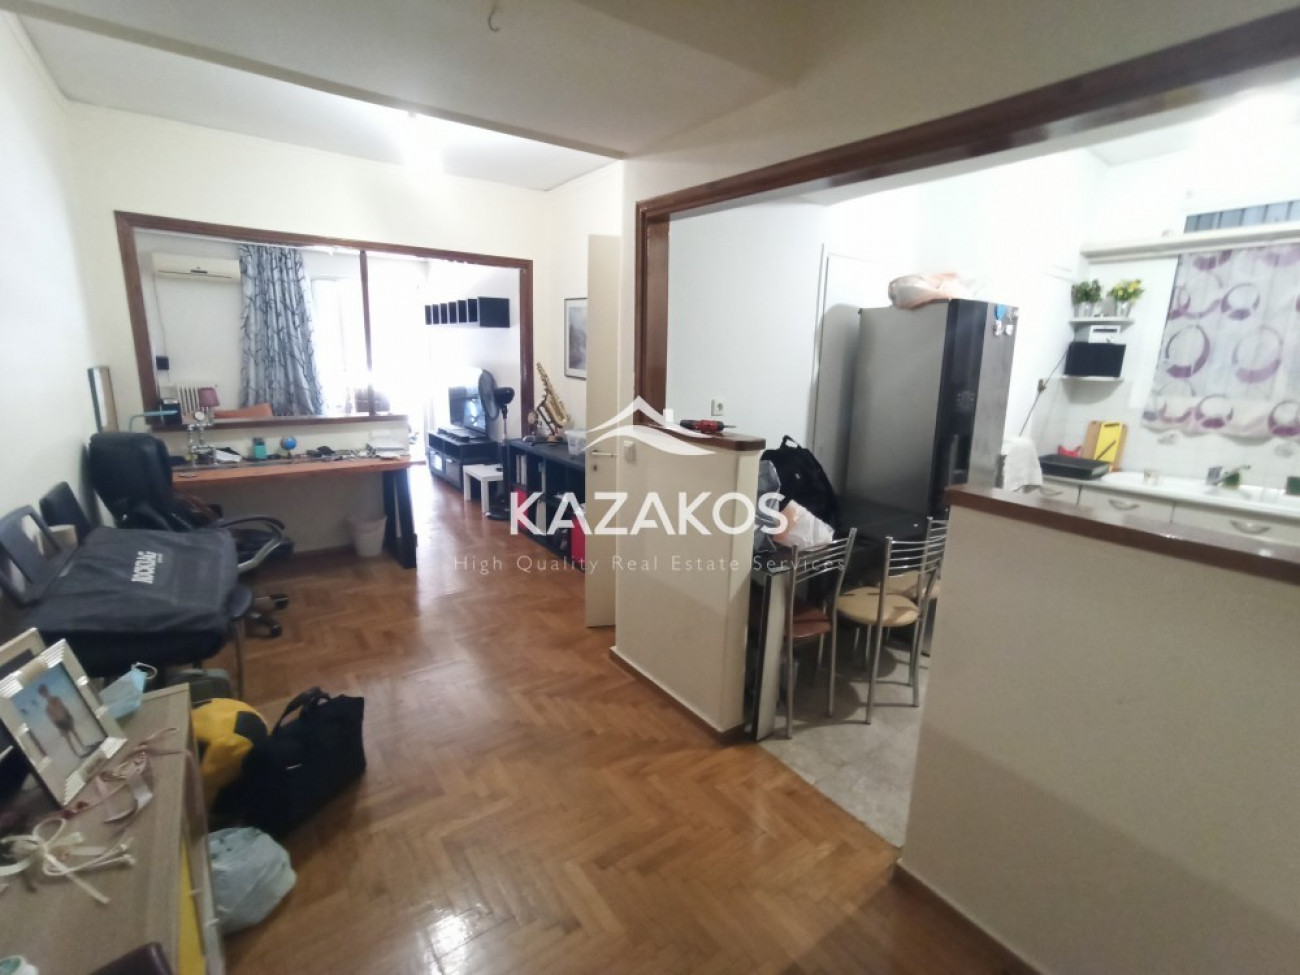 Office for Sale in Ellinorwswn, Athens City Center, Greece